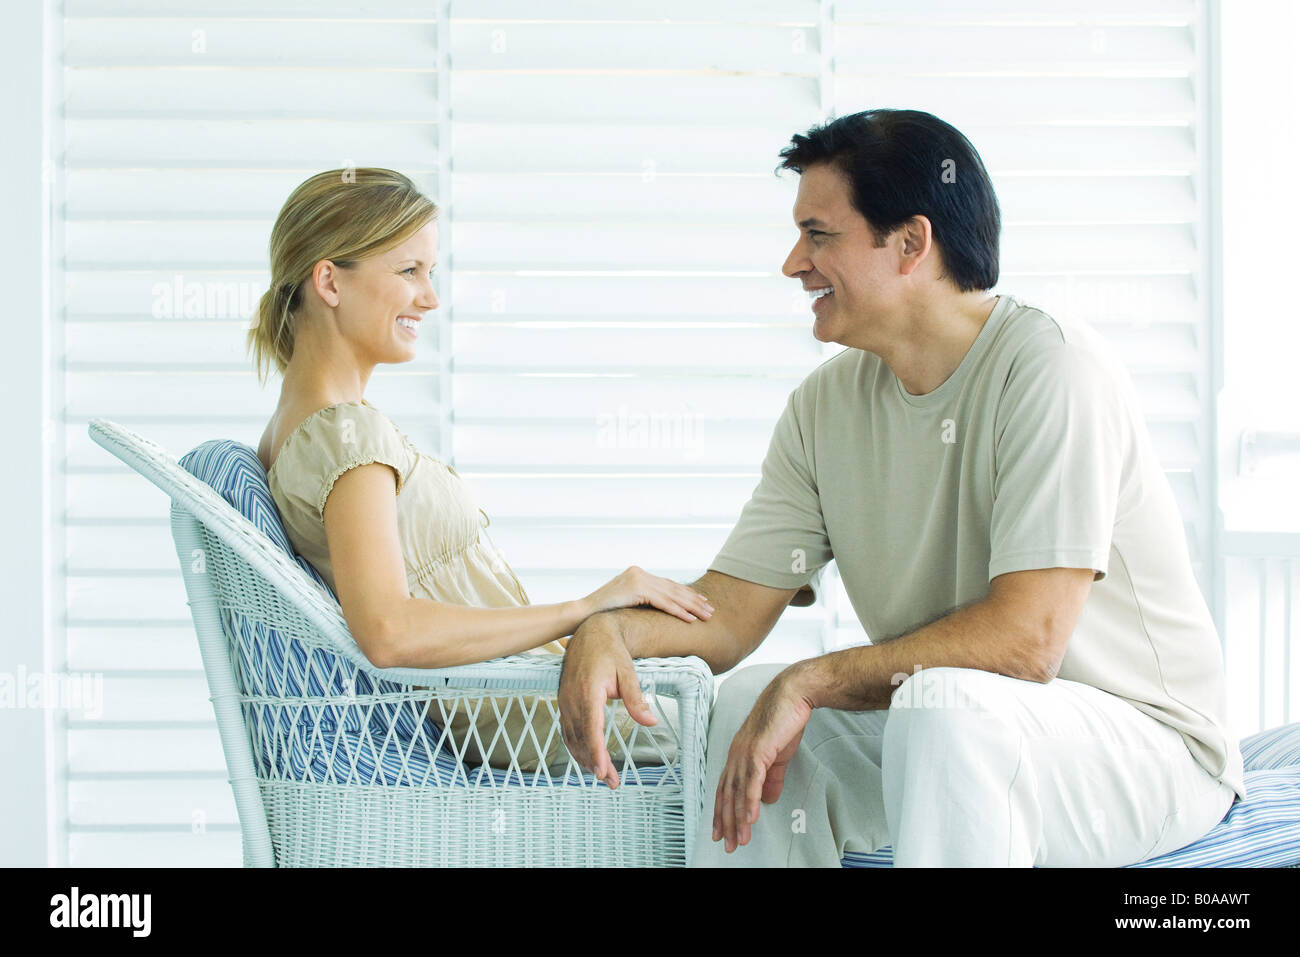 Couple sitting face to face on porch, smiling, woman